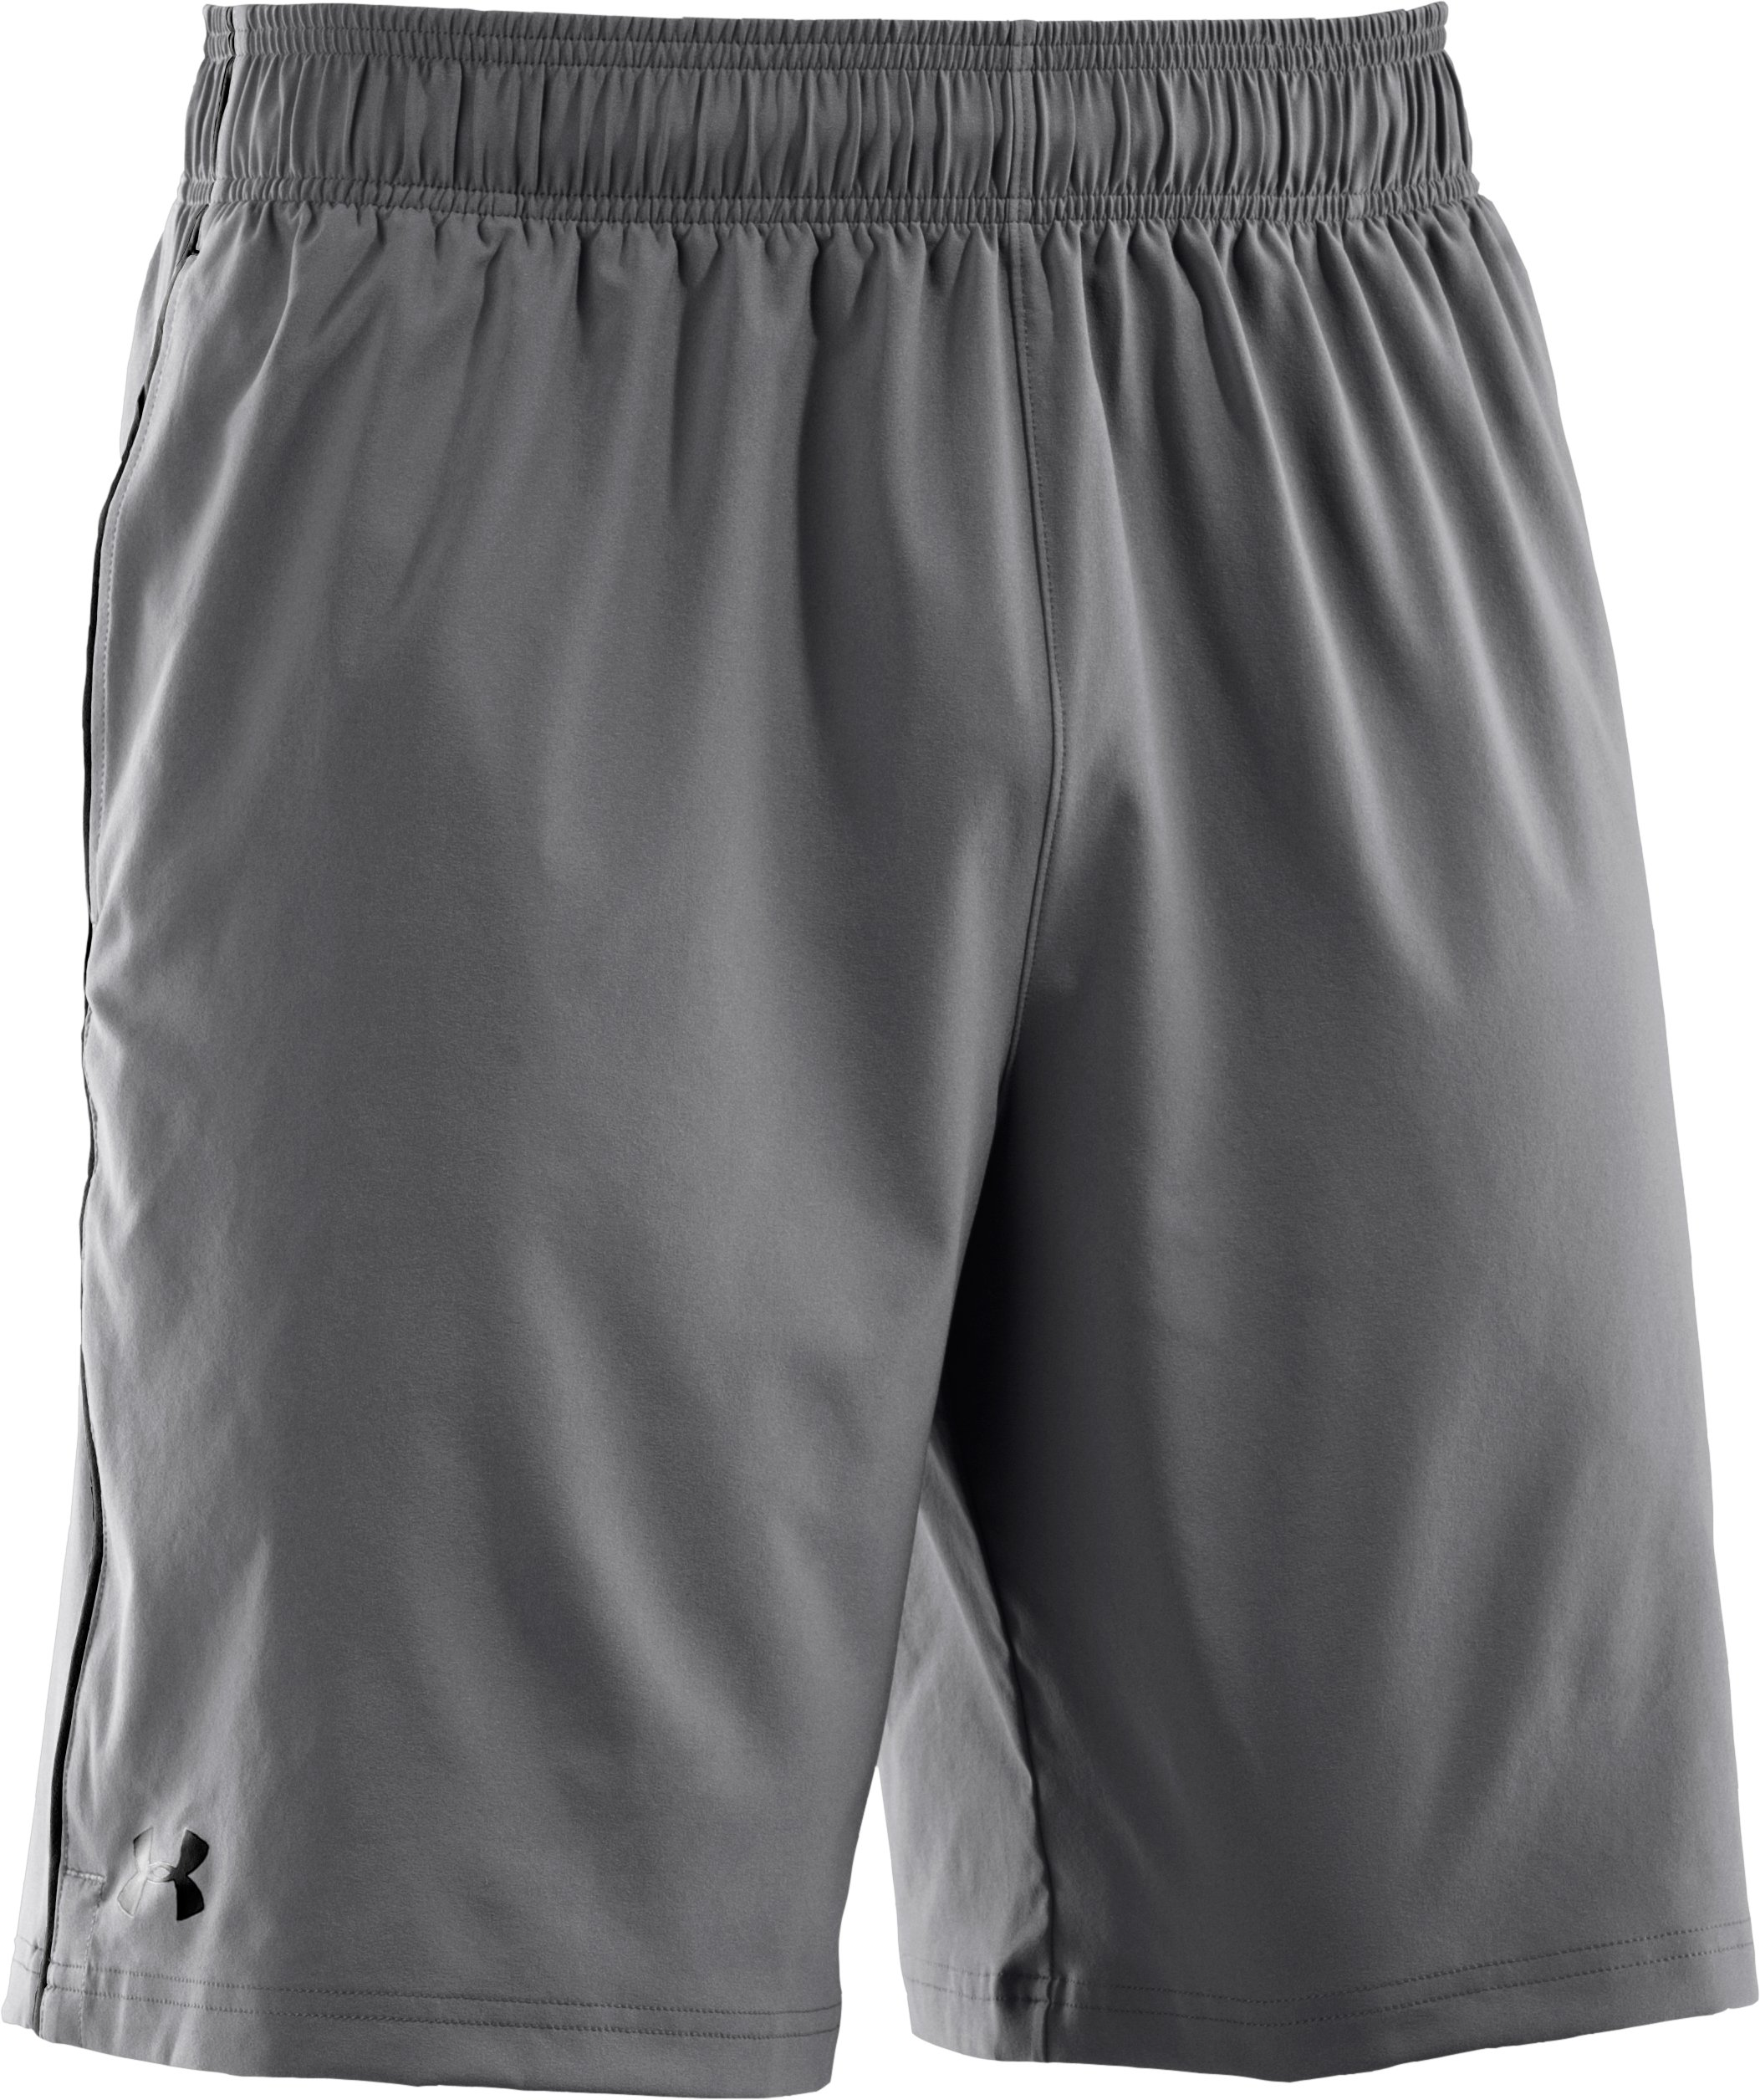 "Men's UA Mirage 10"" Shorts, Graphite,"